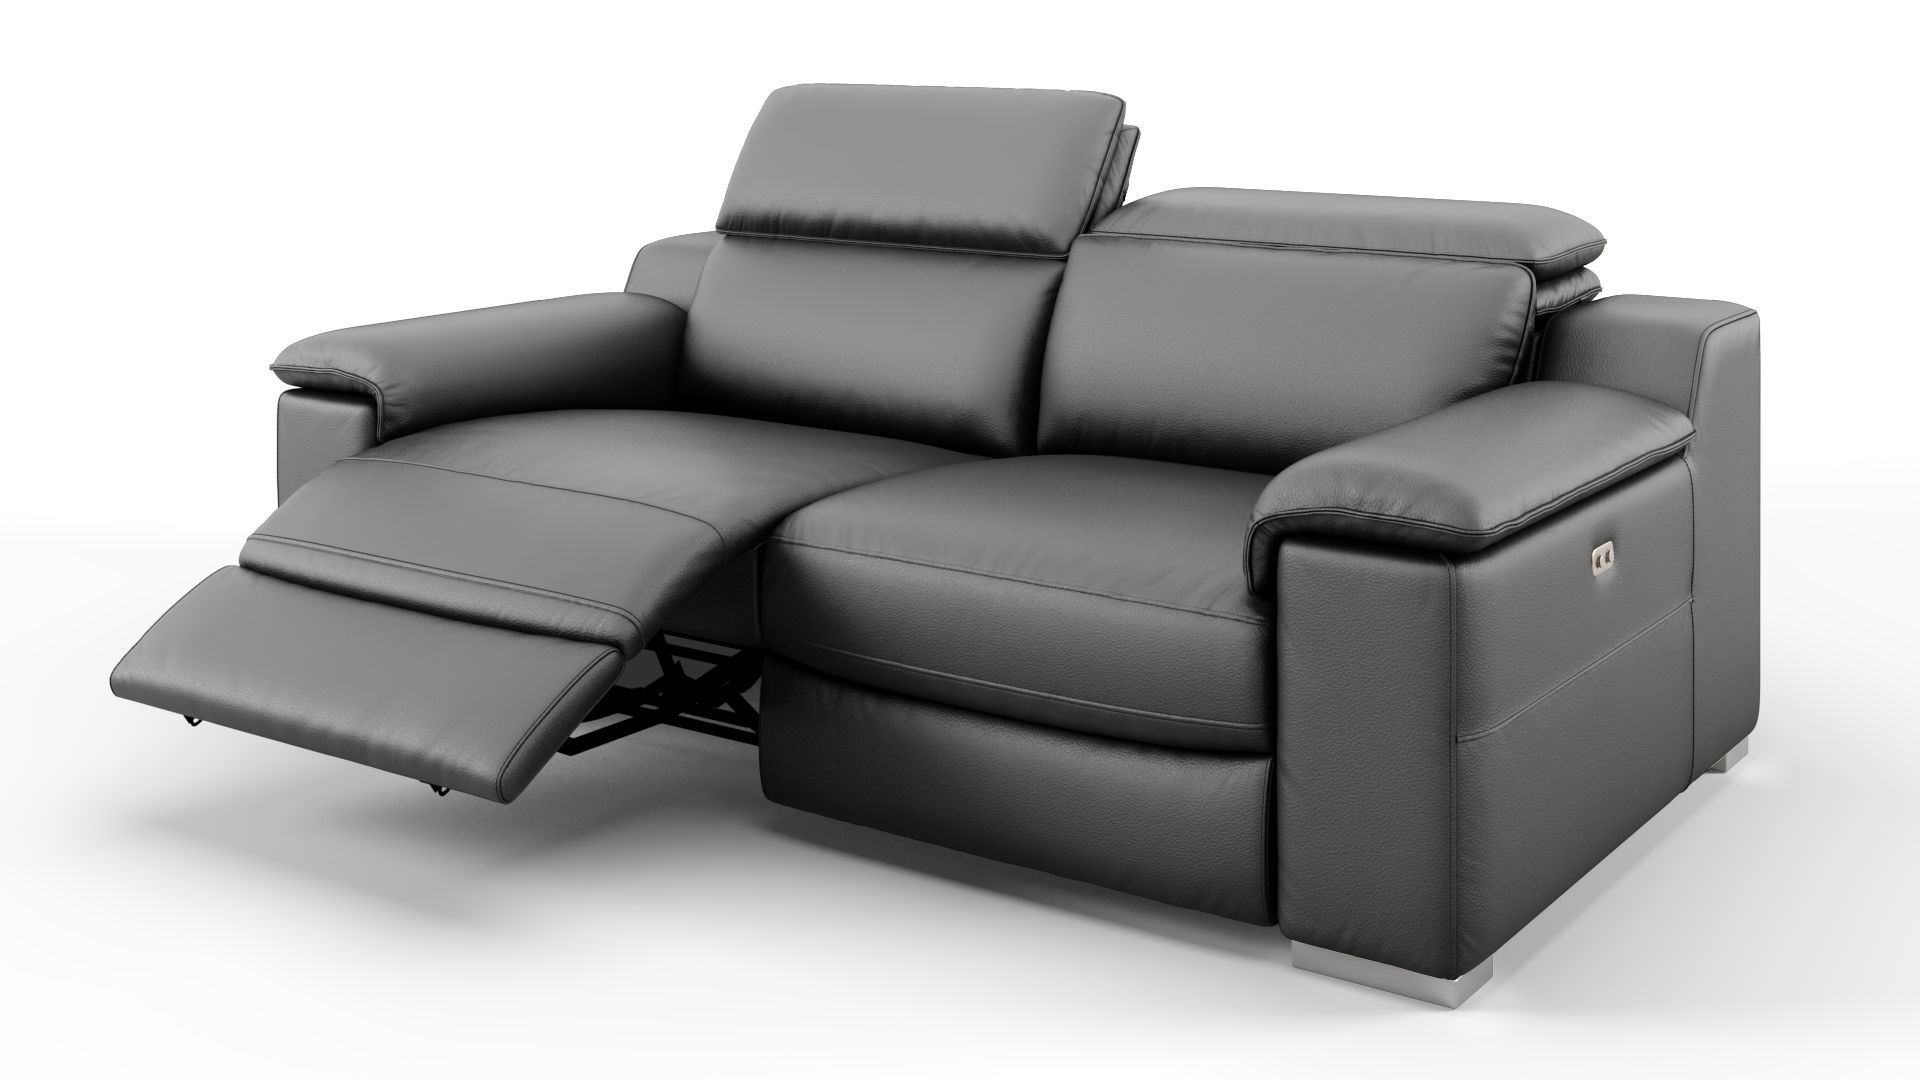 Design Sofa 2 Sitzer Couch Mit Relaxfunktion Sofanella Sofa Mit Relaxfunktion 2 Sitzer Sofa Moderne Couch